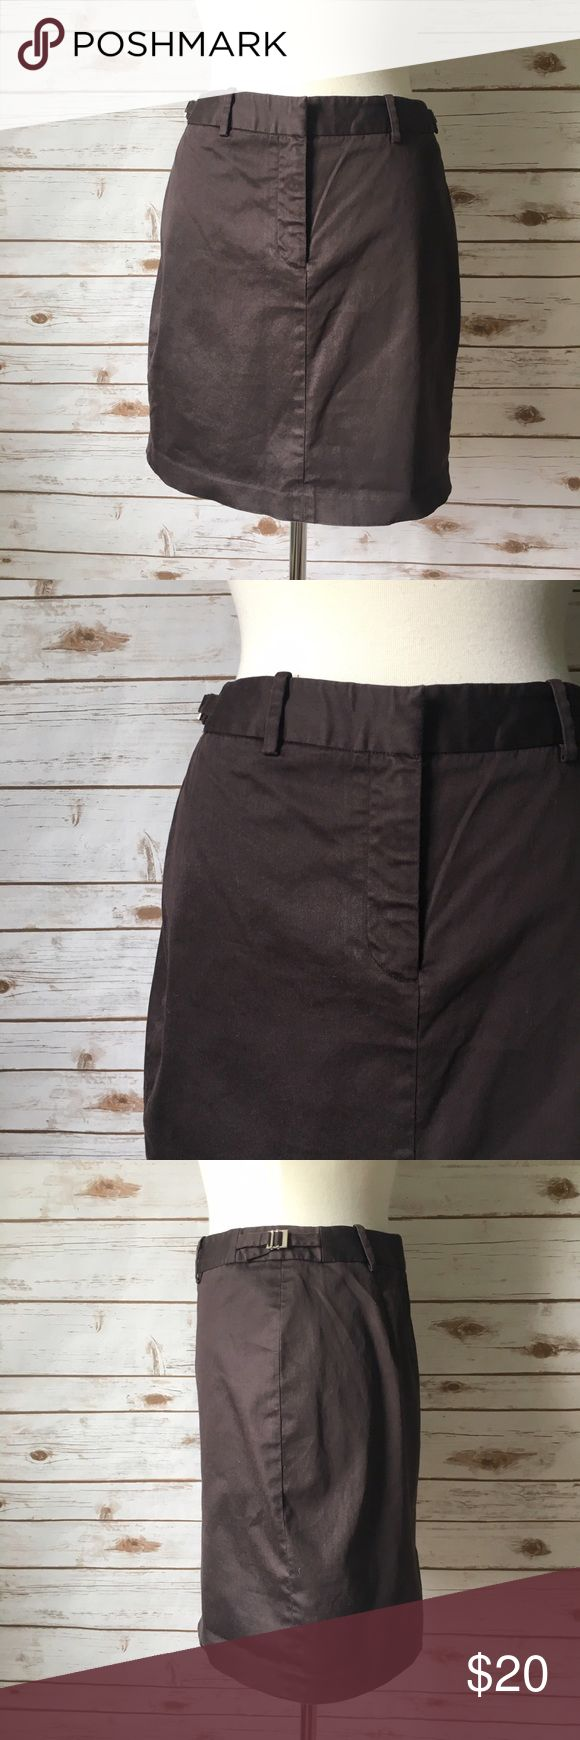 "The Limited Brown Pencil Skirt Chic and classy brown pencil skirt by The Limited. ▪️18"" long ▪️17"" waist laid flat ▪️19"" hips laid flat ▪️4"" rear slit ▪️Unlined ▪️In good condition   🚭 Smoke-free home 📬 Ships by next day 💲 Price negotiable  🔁 Open to trades  💟Happy Poshing!💟 The Limited Skirts Pencil"